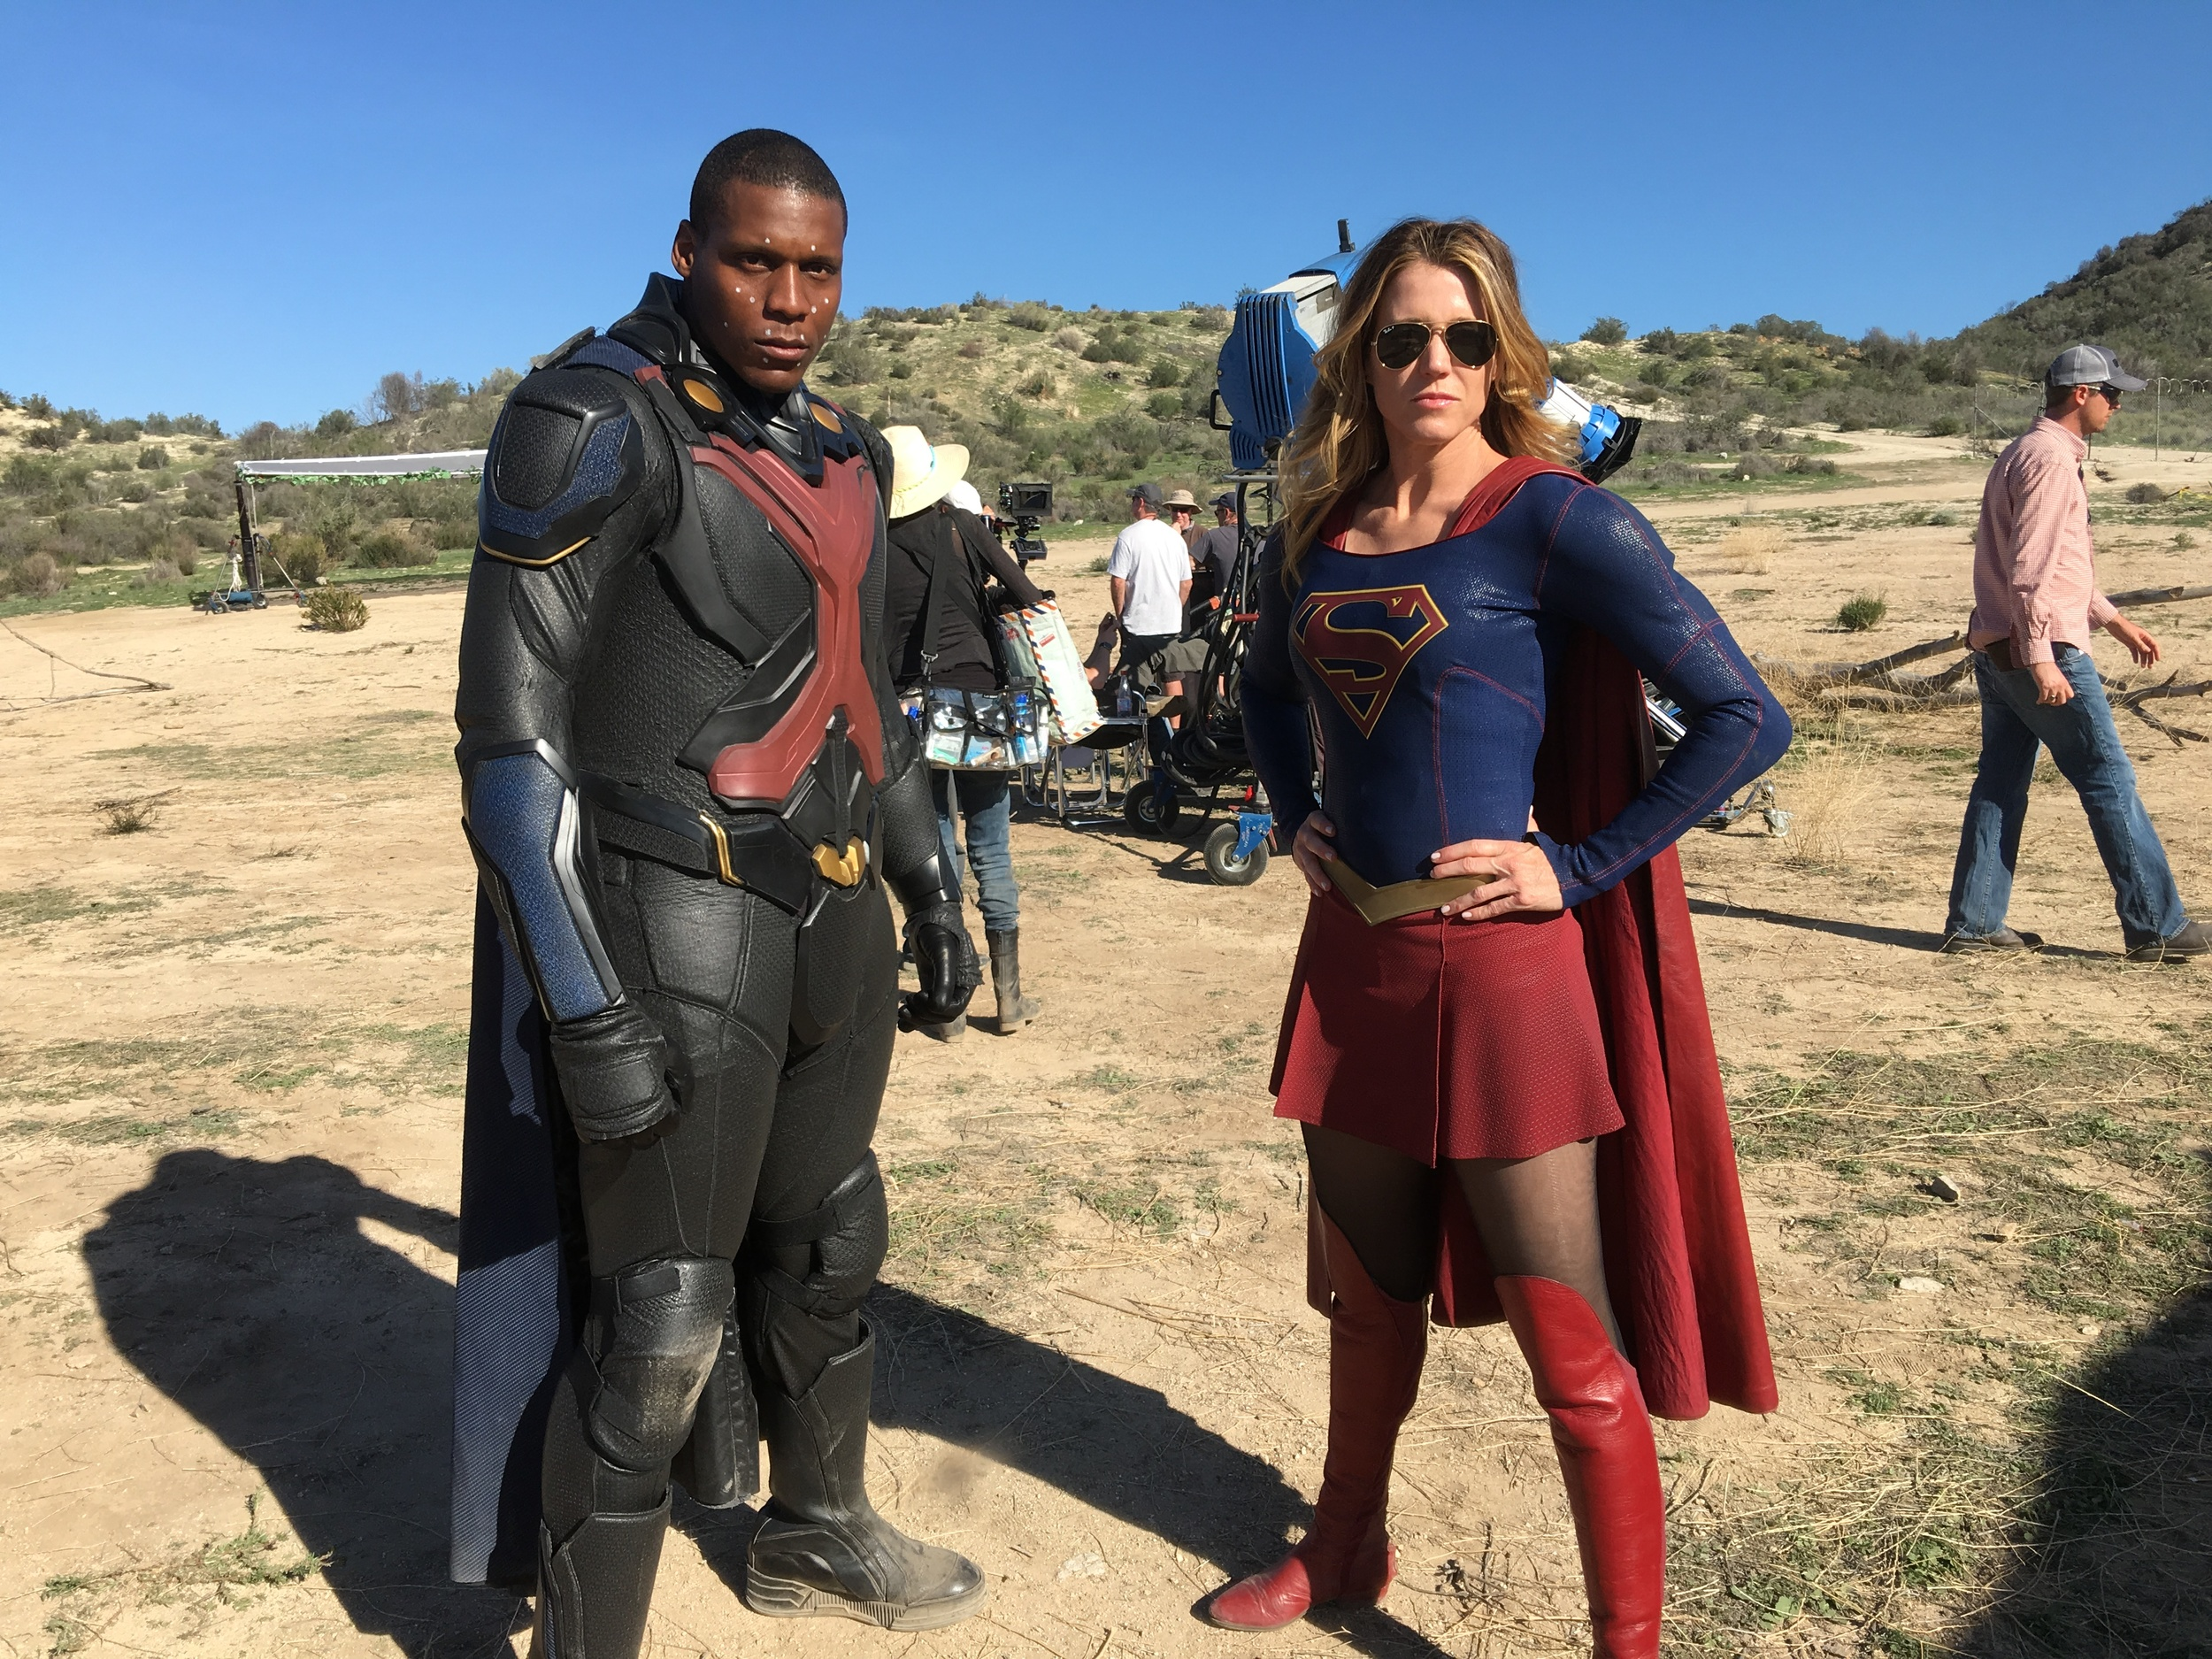 SEASON 1 SUPERGIRL 2016